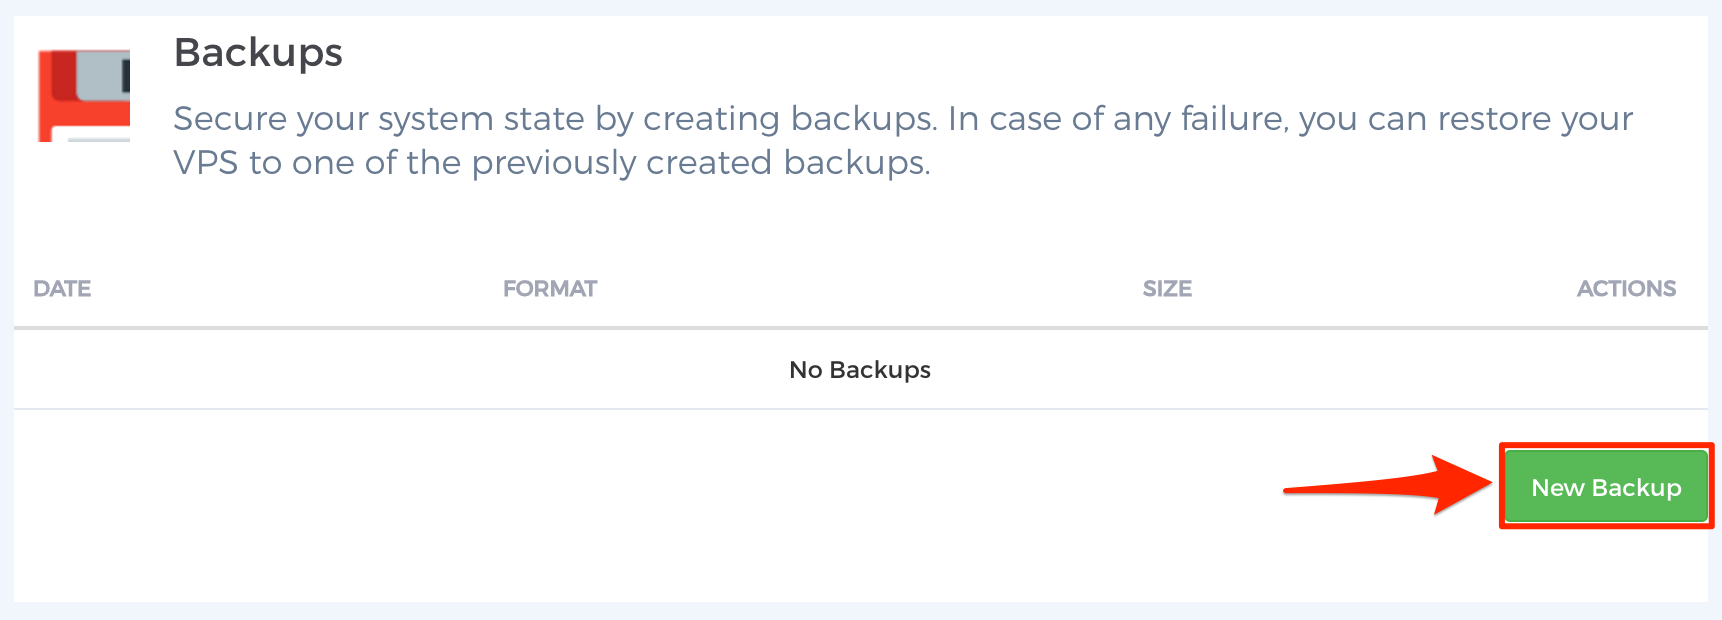 Step 2 - Manual Backups